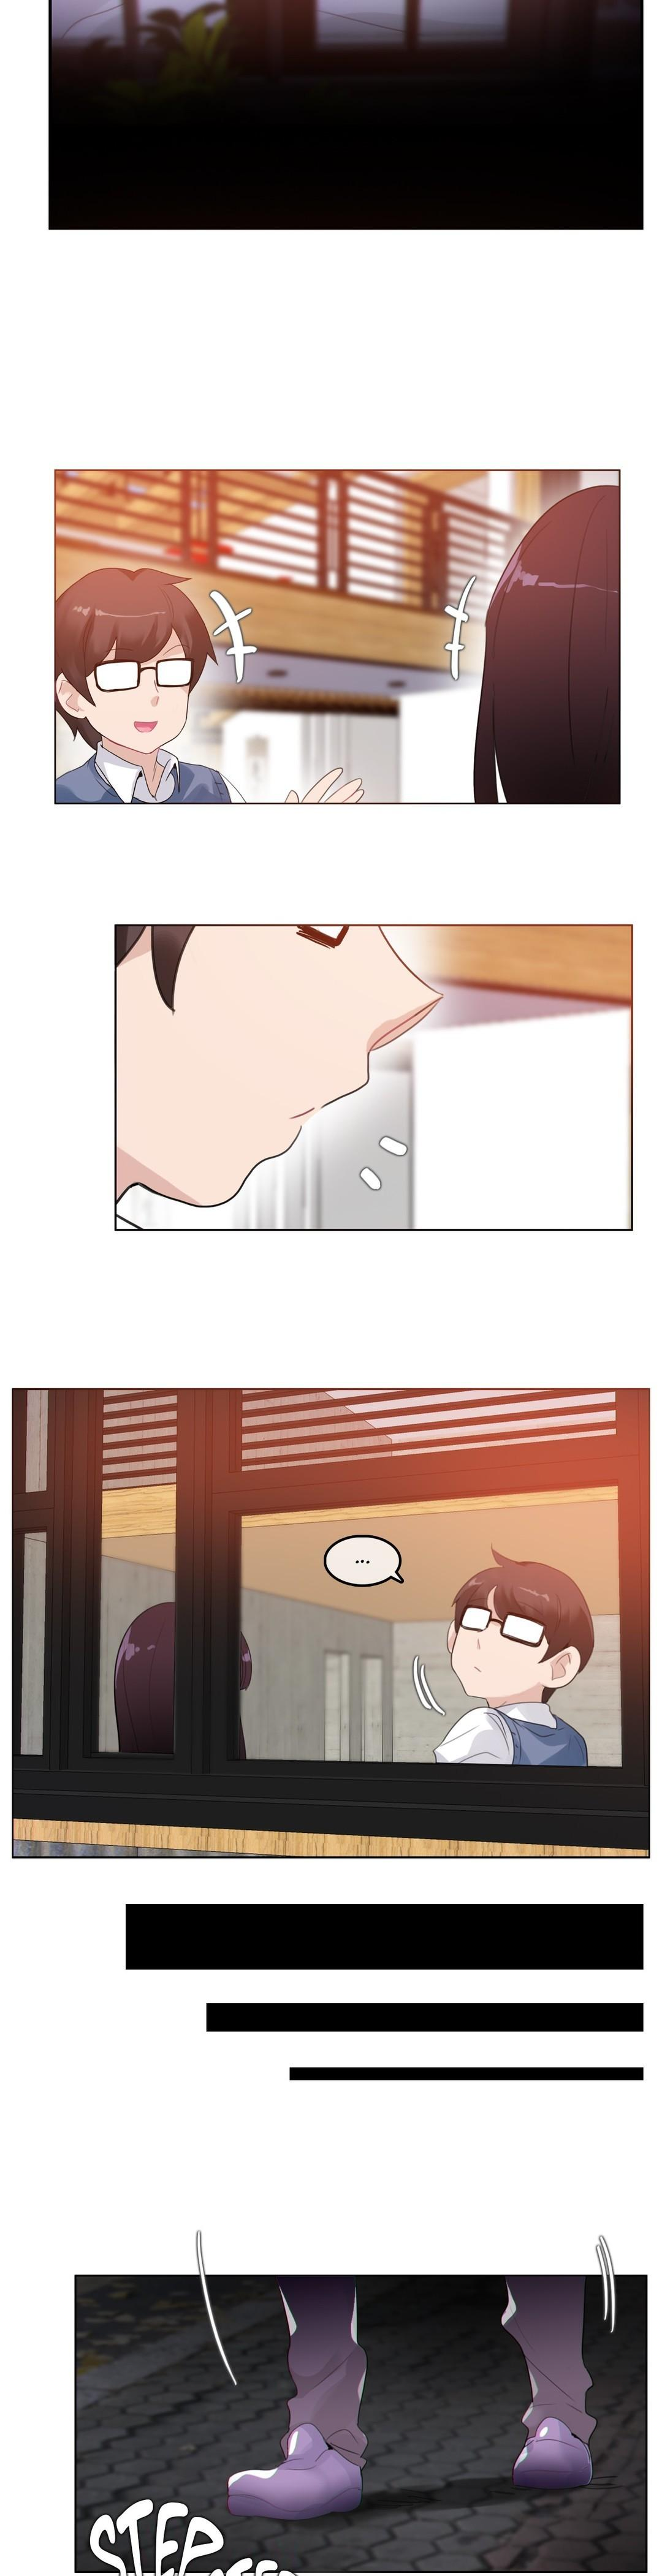 A Pervert's Daily Life Ch. 1-34 600